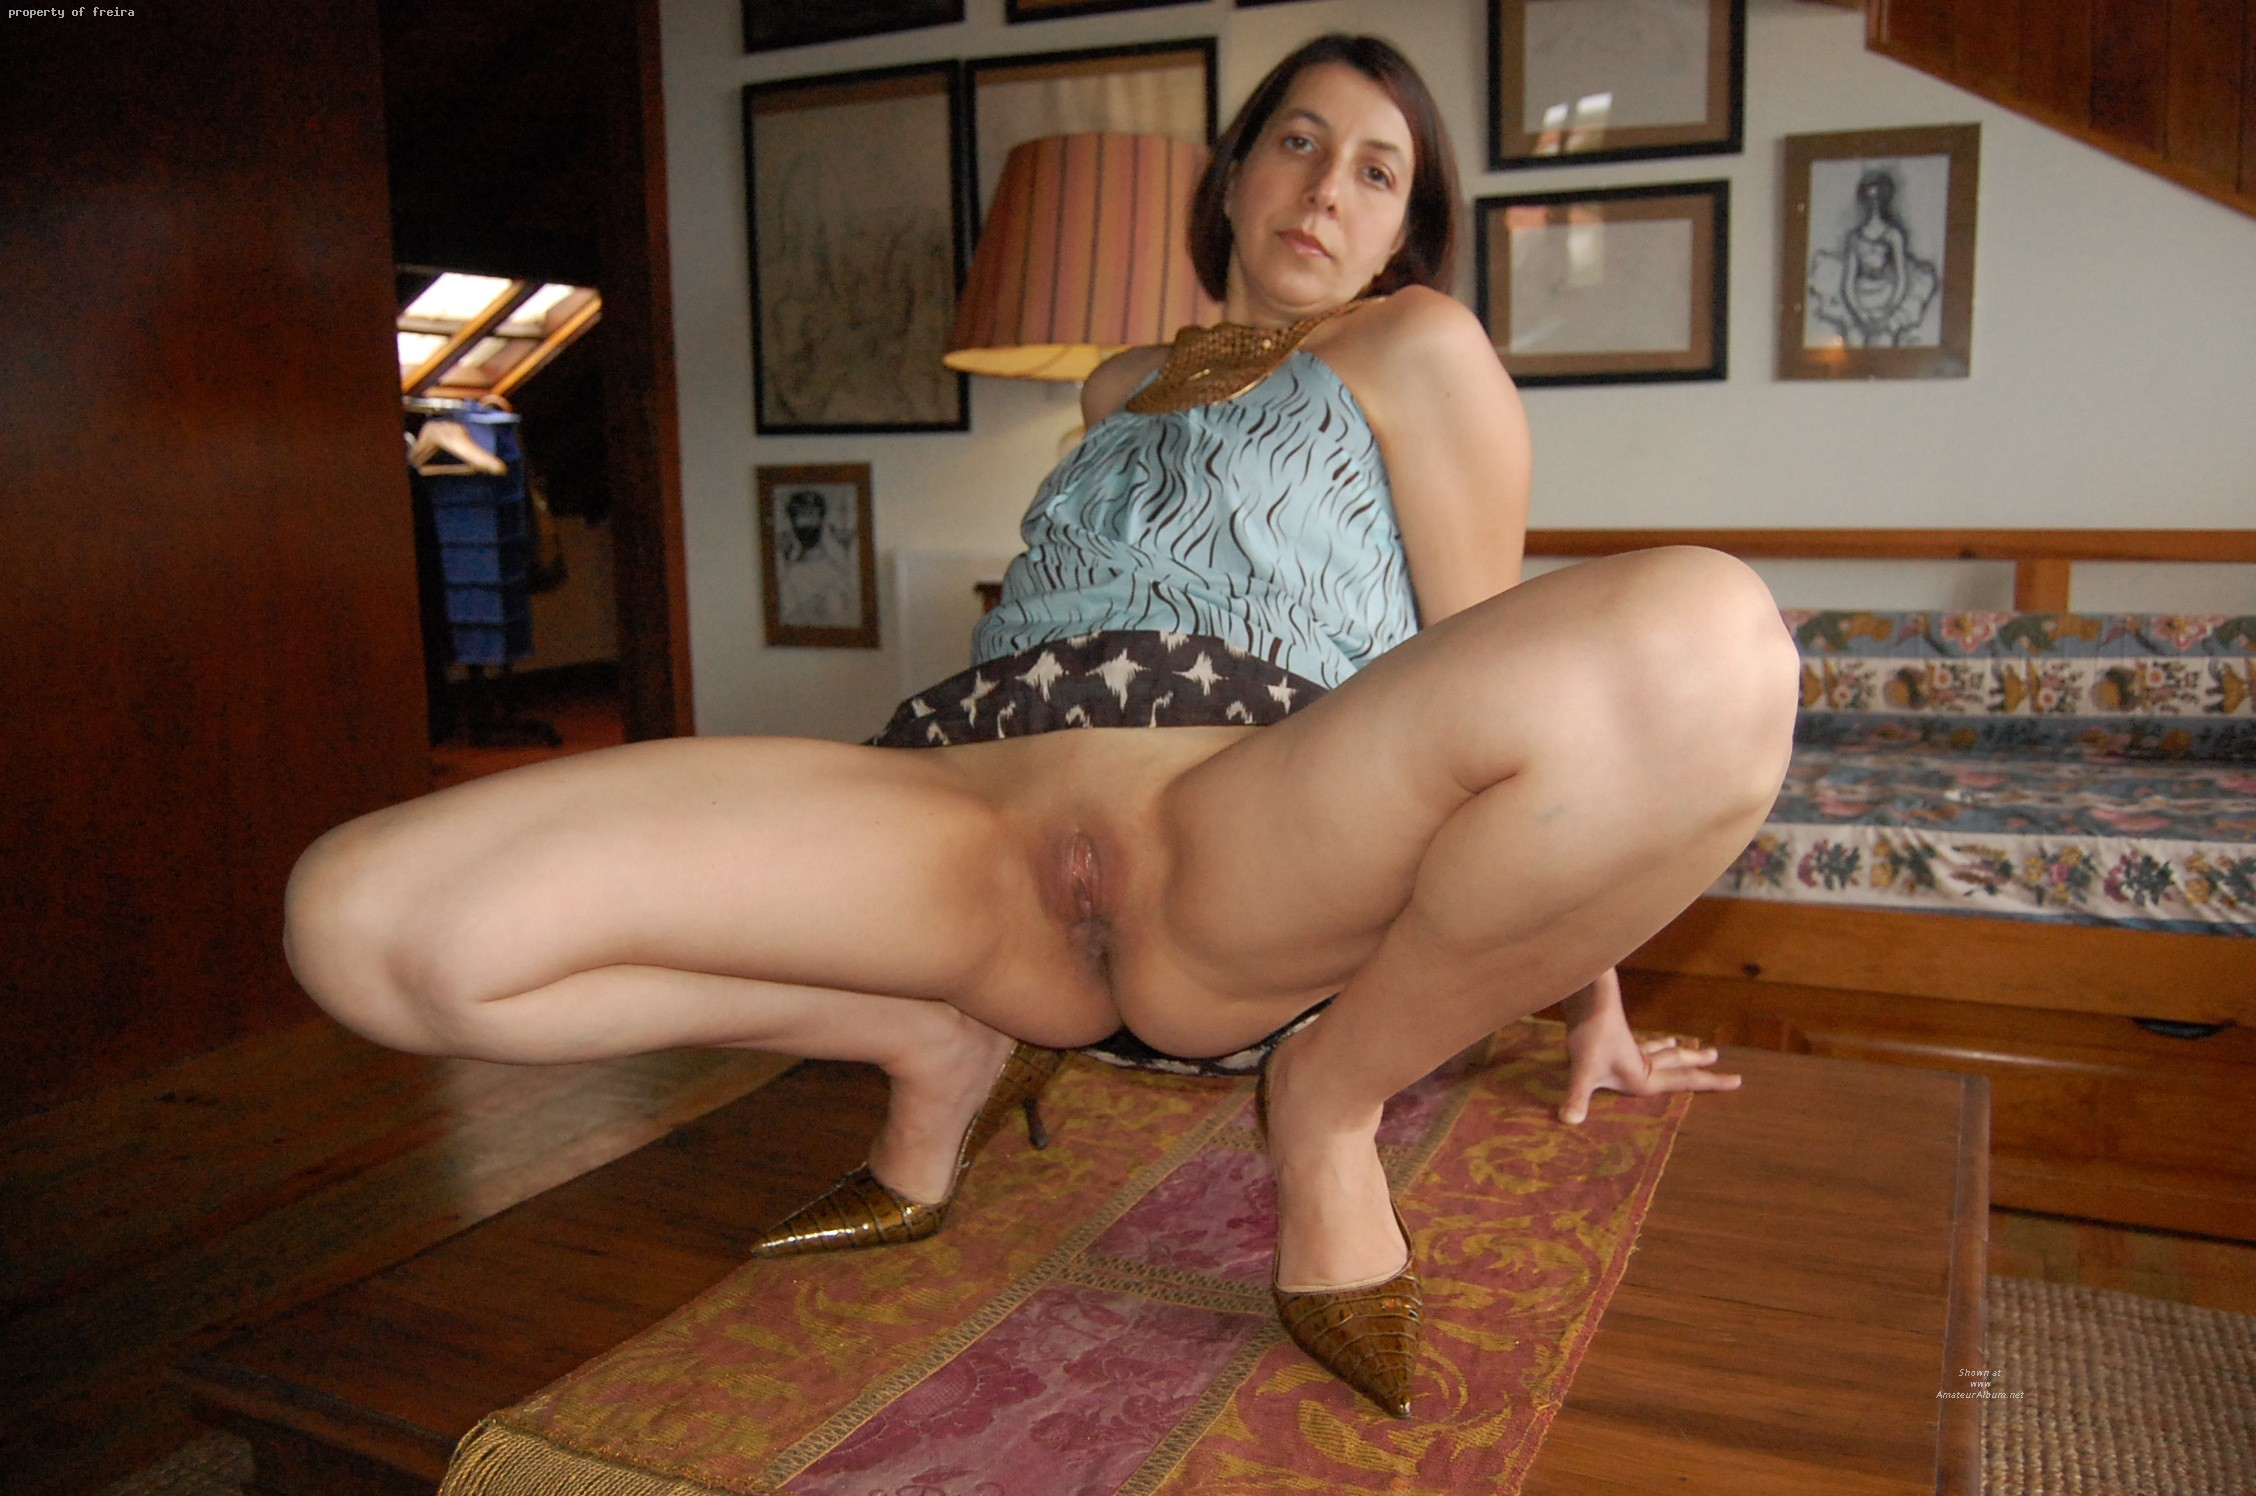 Agree, fat amateur mature housewife can recommend